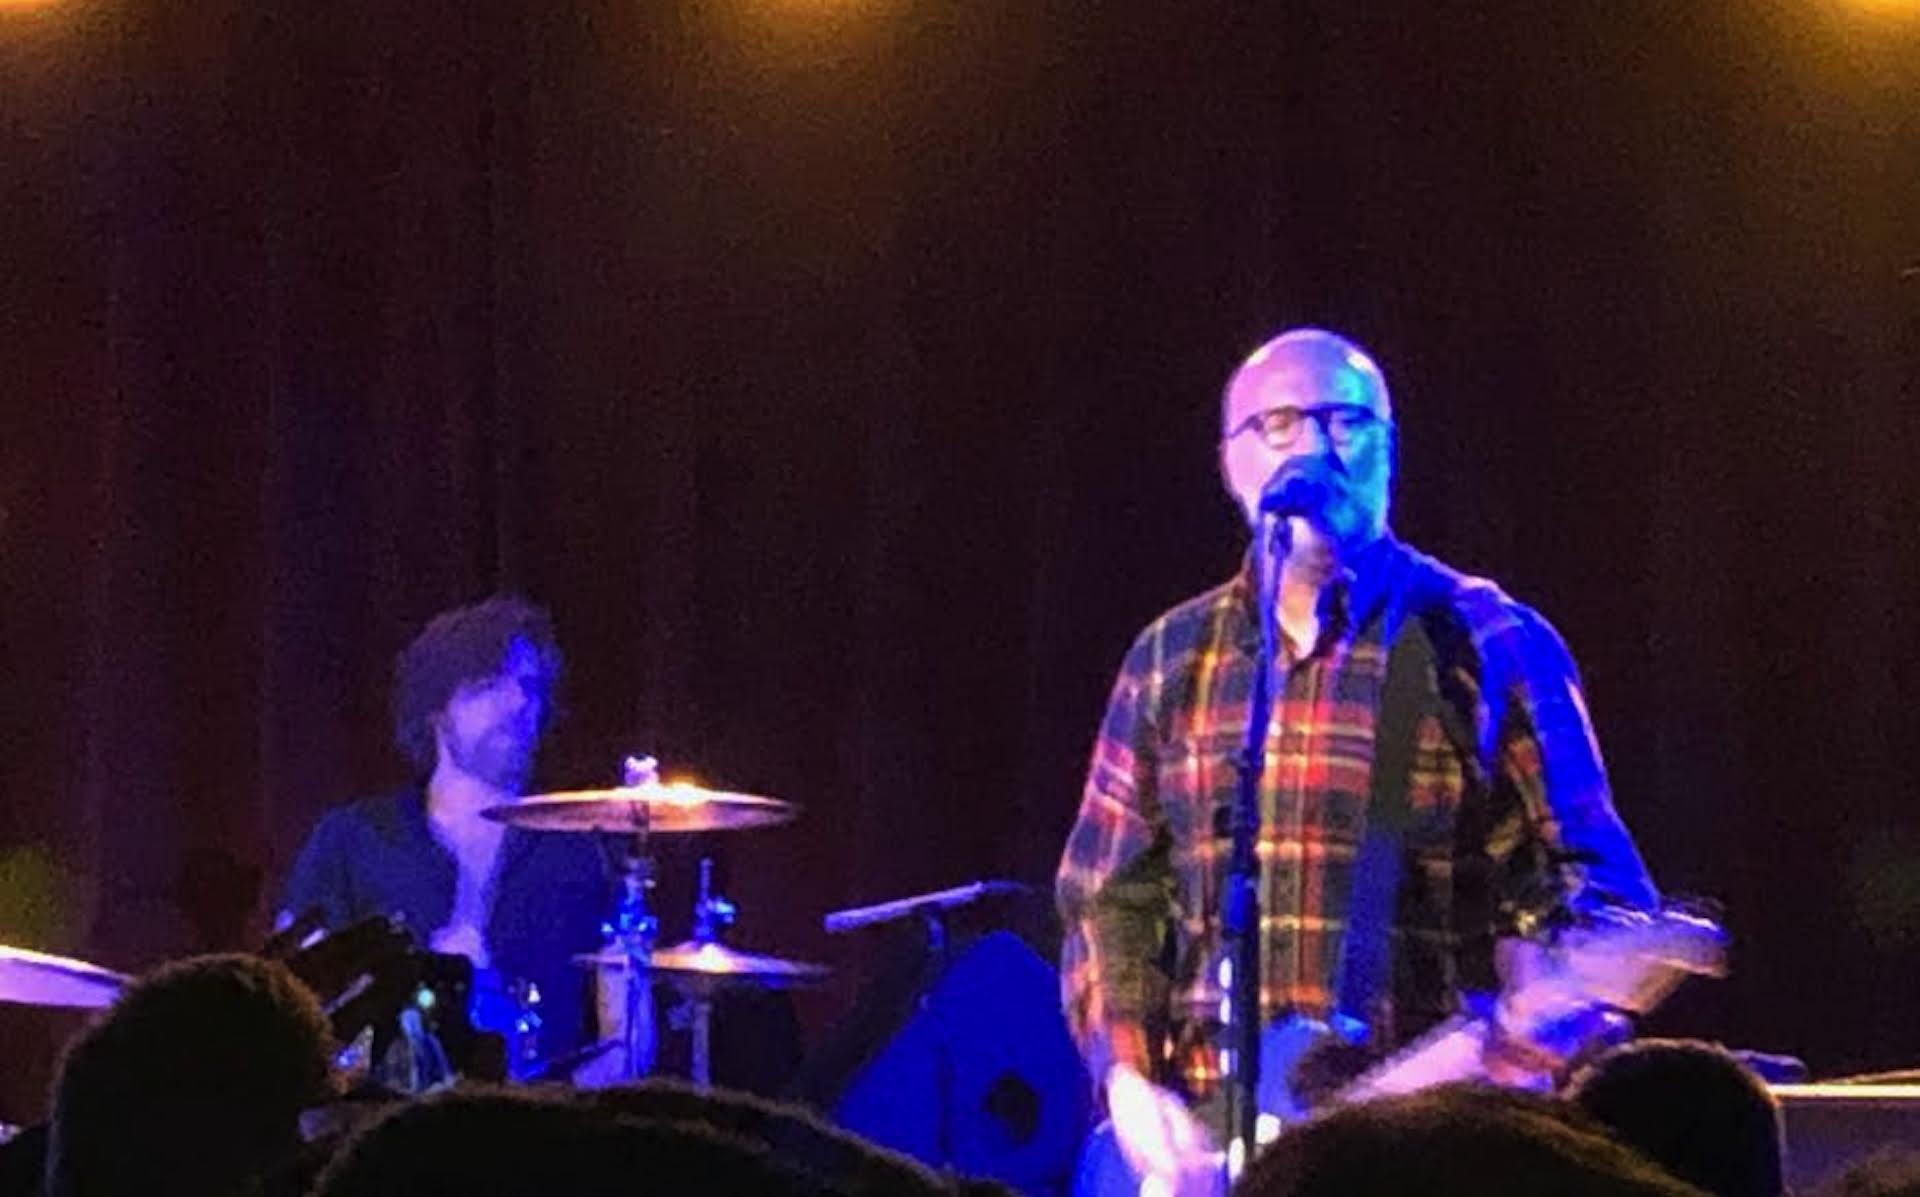 Bob Mould forges ahead, without losing sight of his storied past